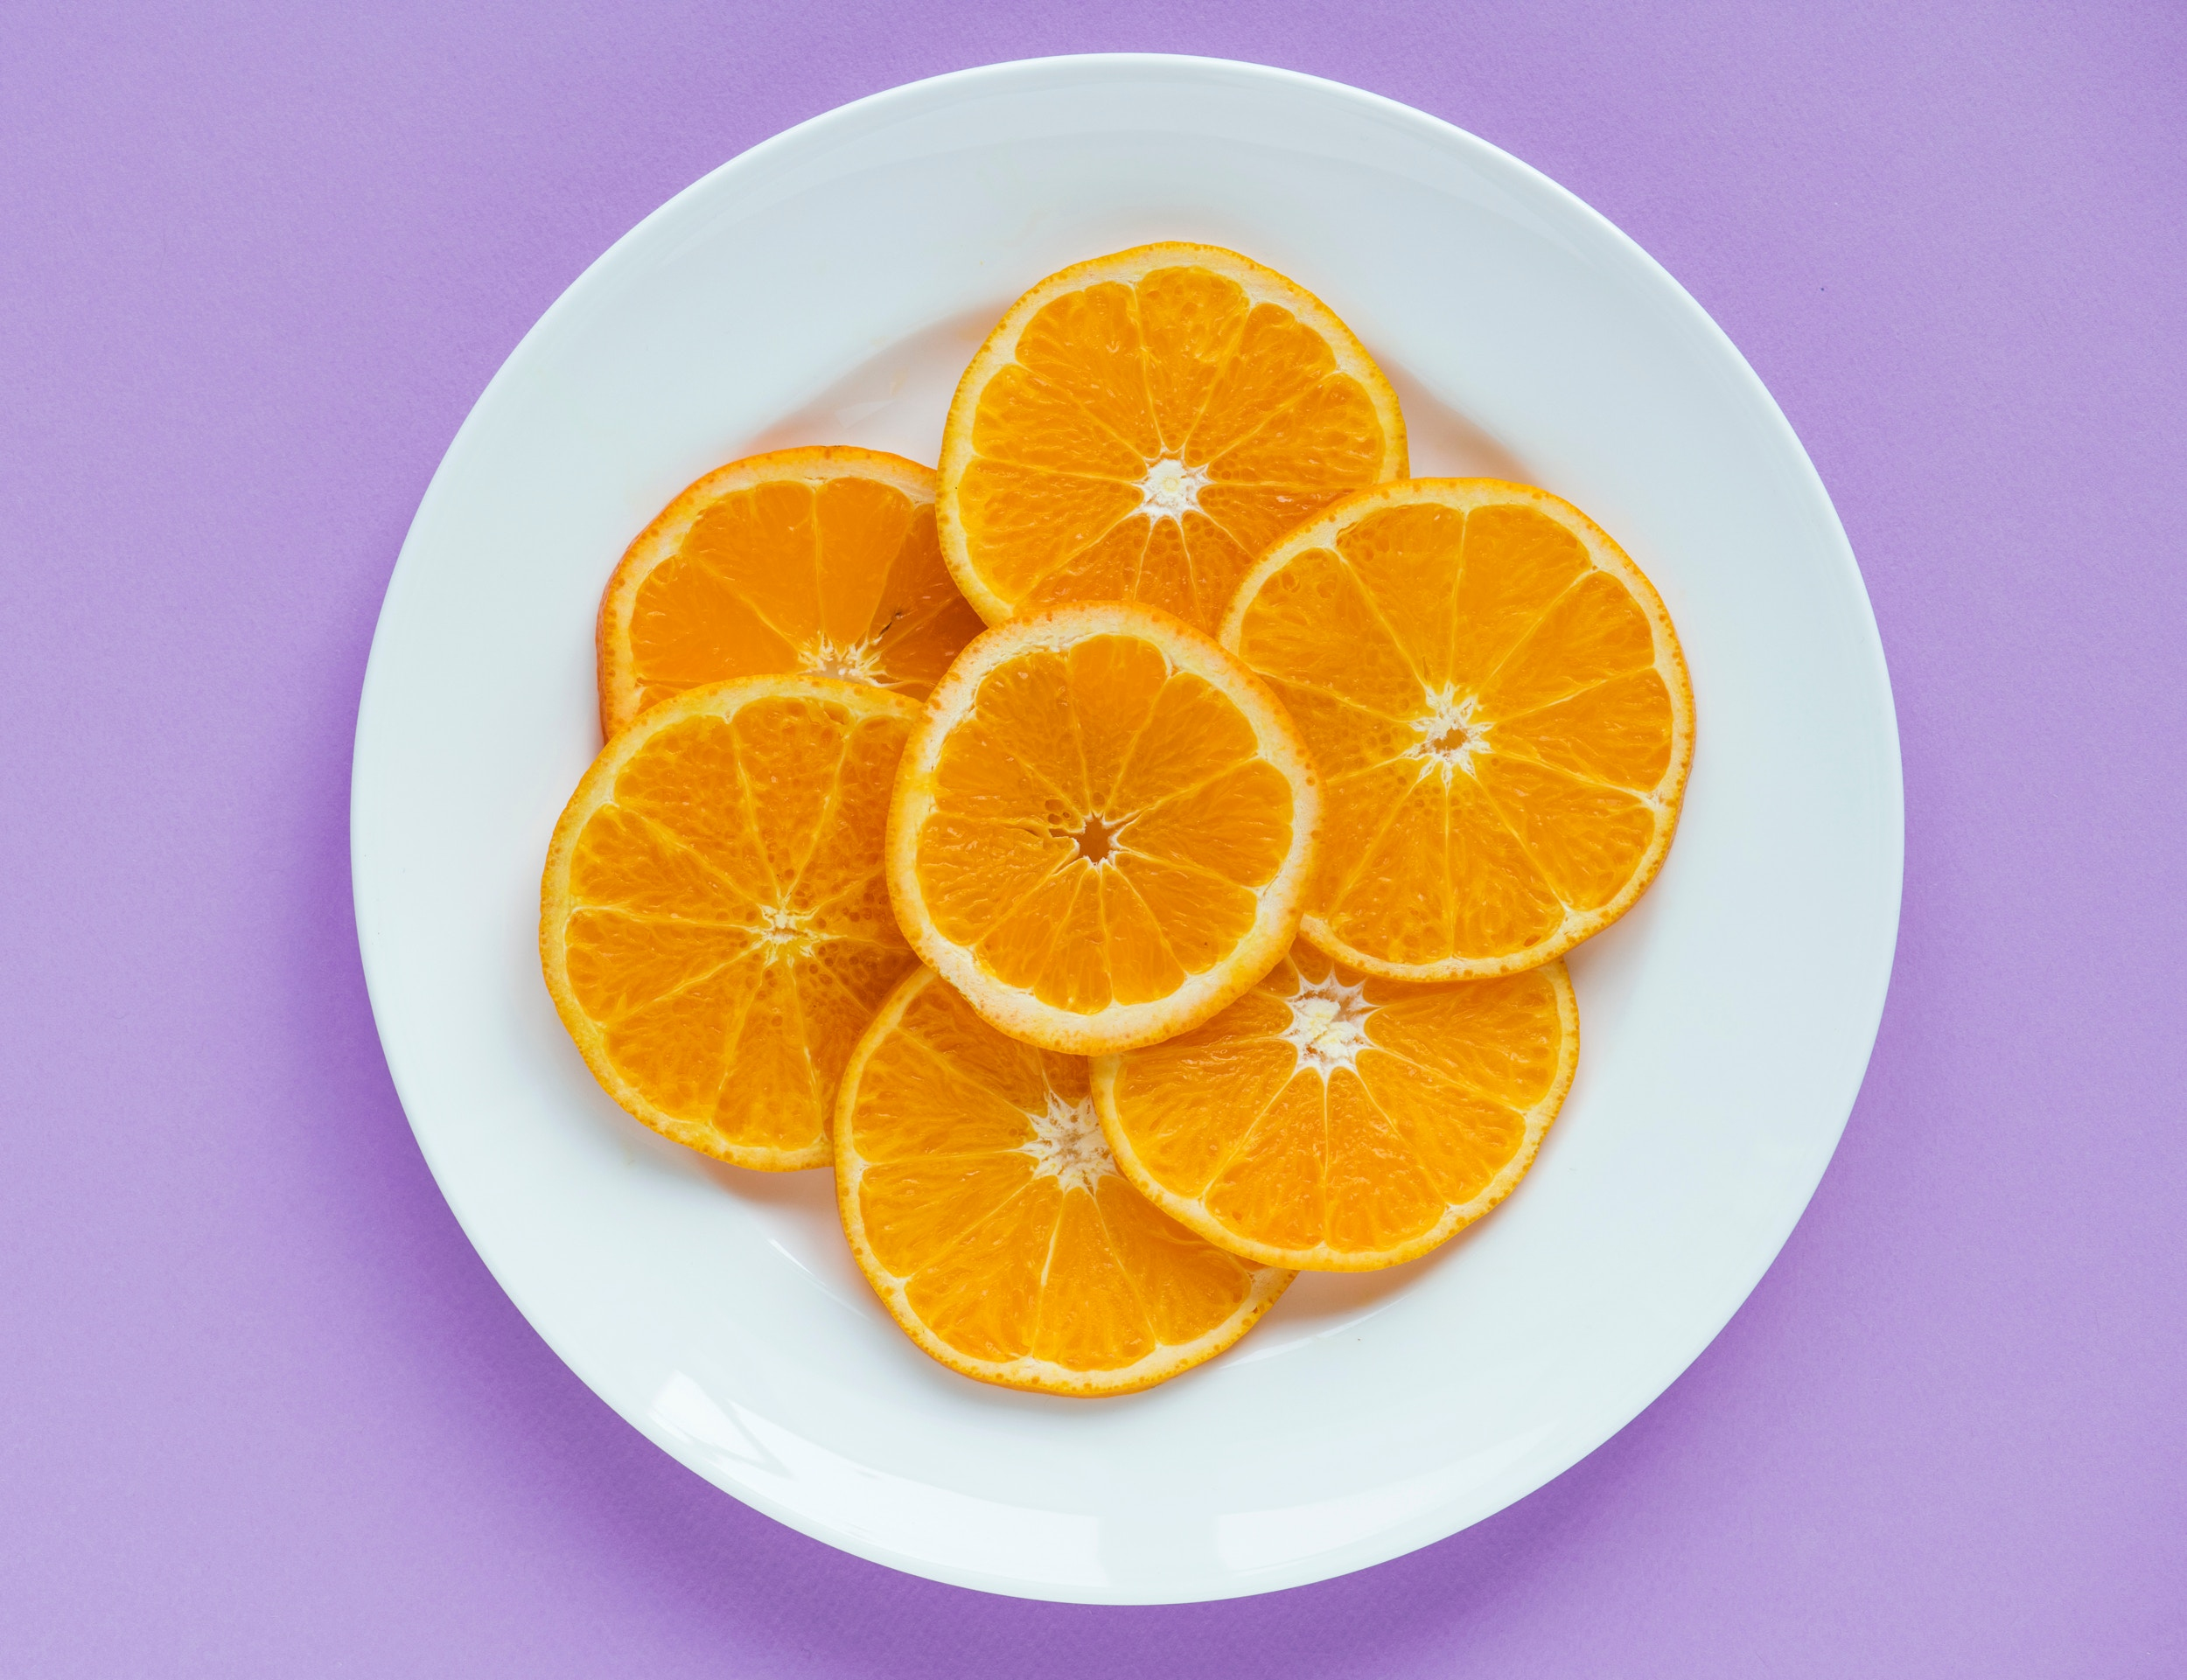 sliced oranges on a white plate